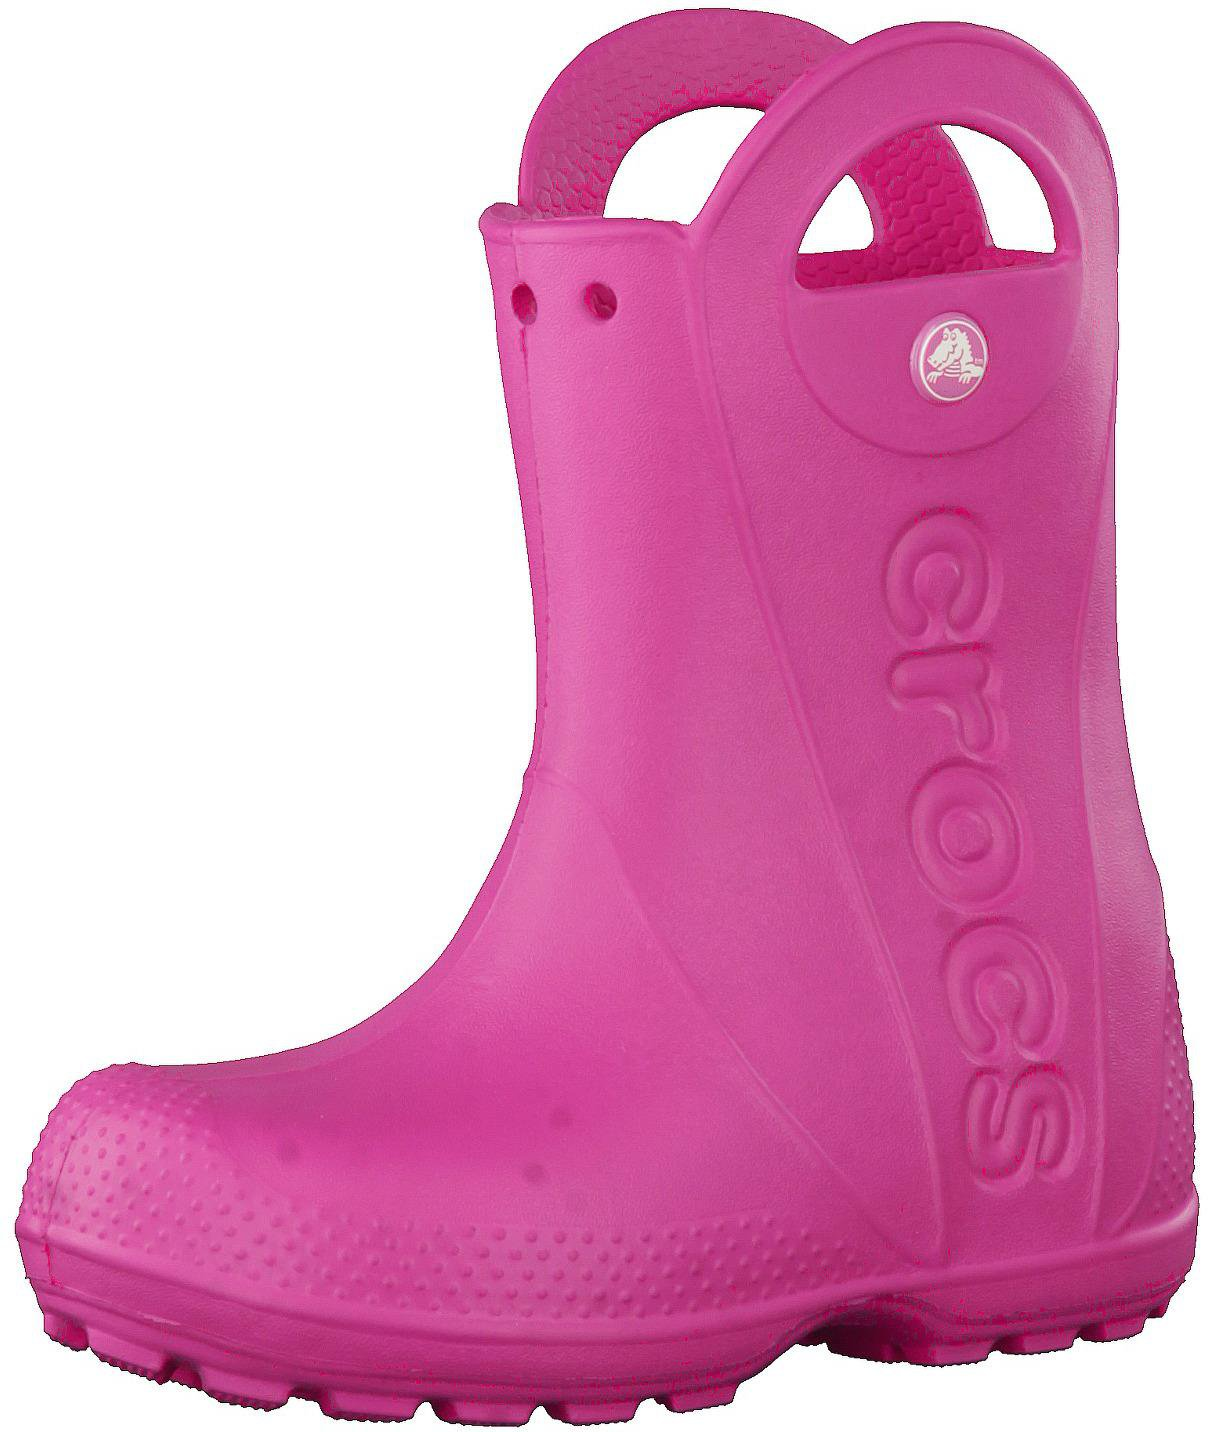 super popular c3833 6113c Crocs Gummistiefel Kinder